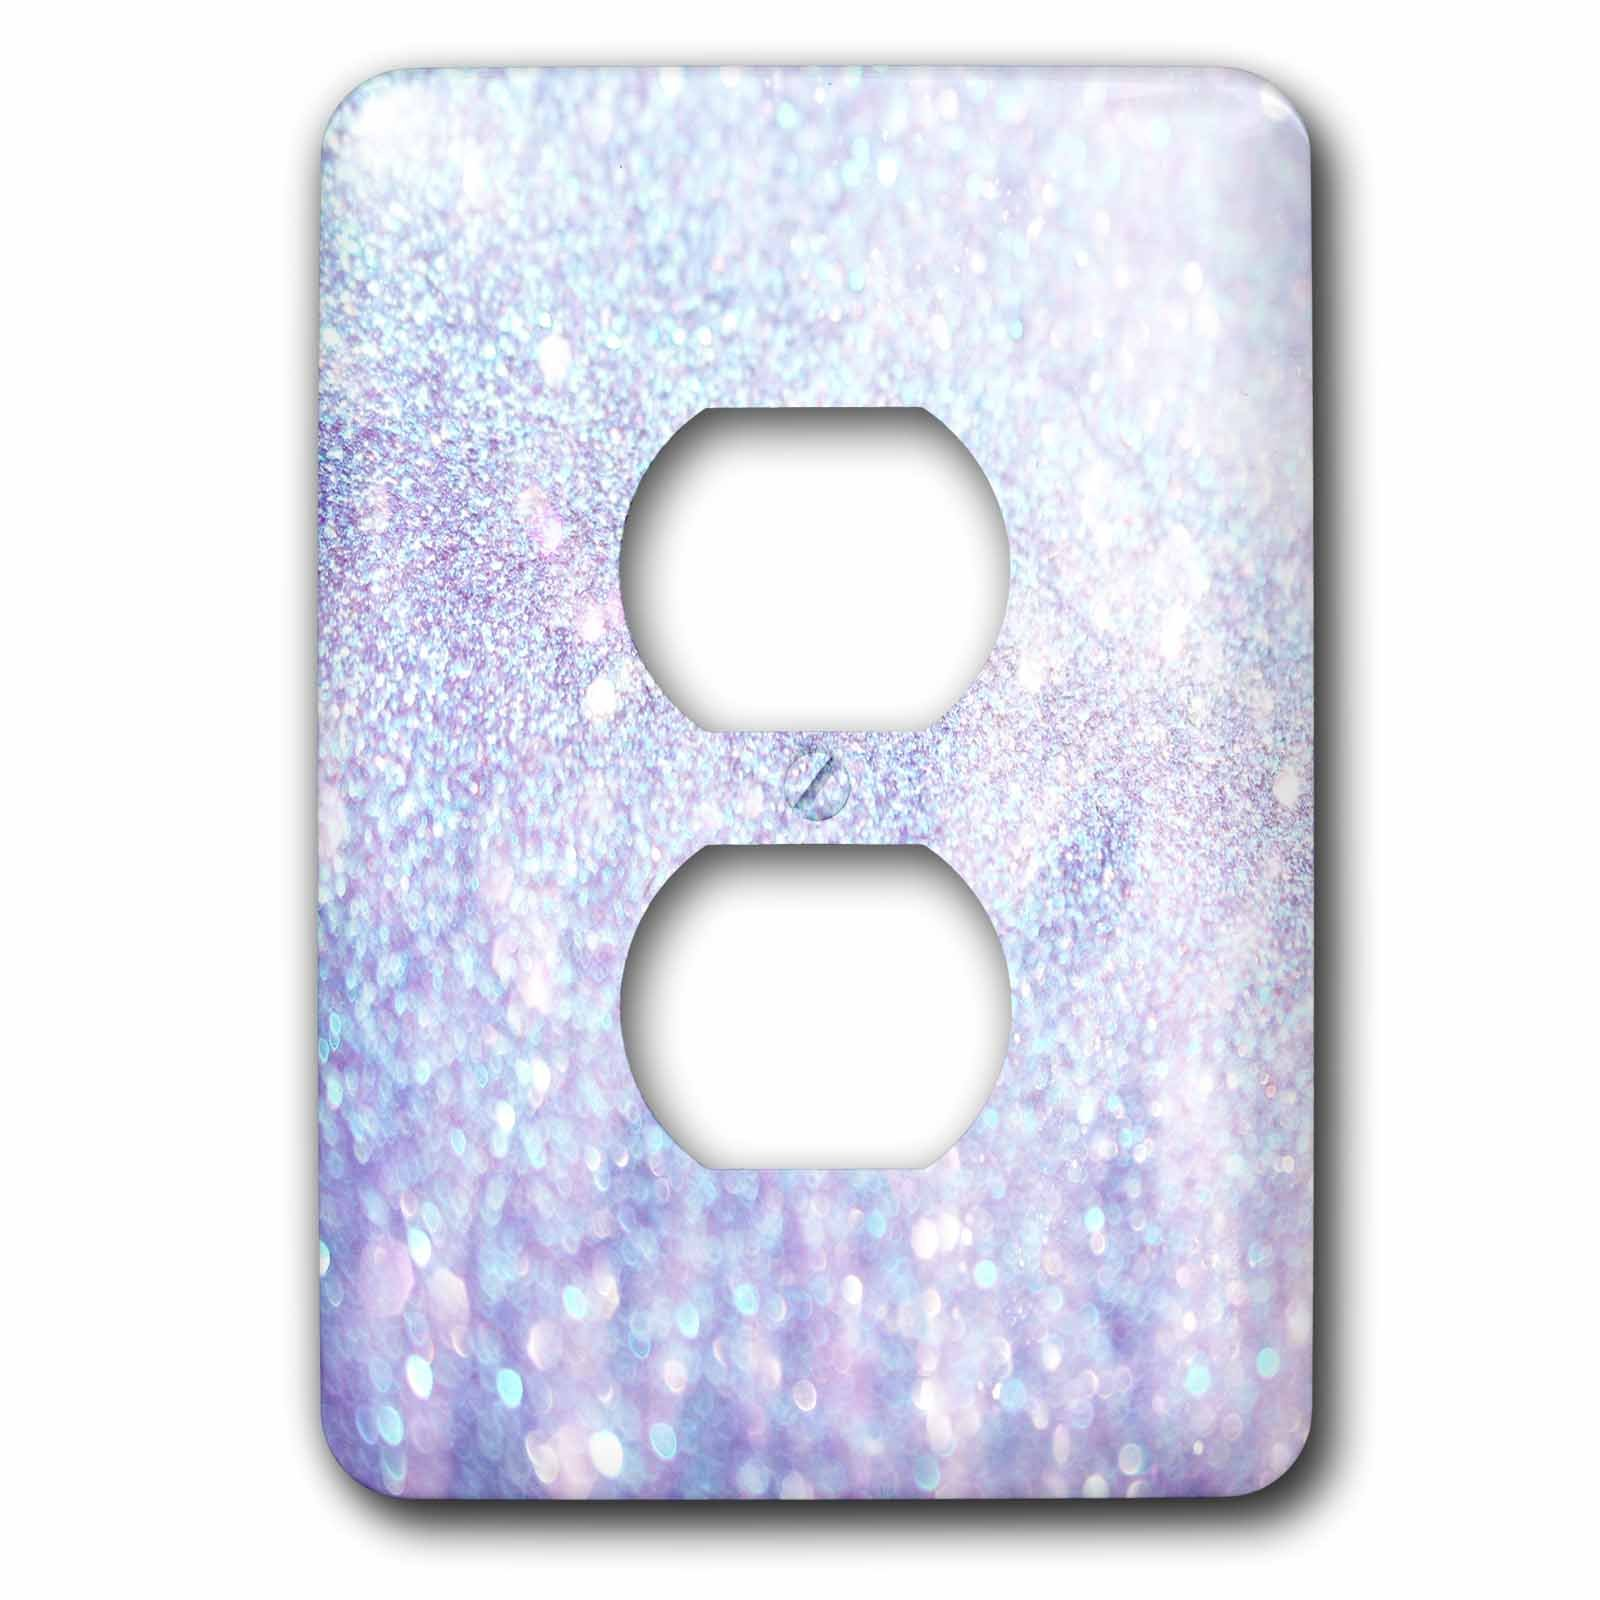 3D Rose lsp_252110_6 Luxury Diamond Glitter Sparkly 2 Plug Outlet Cover